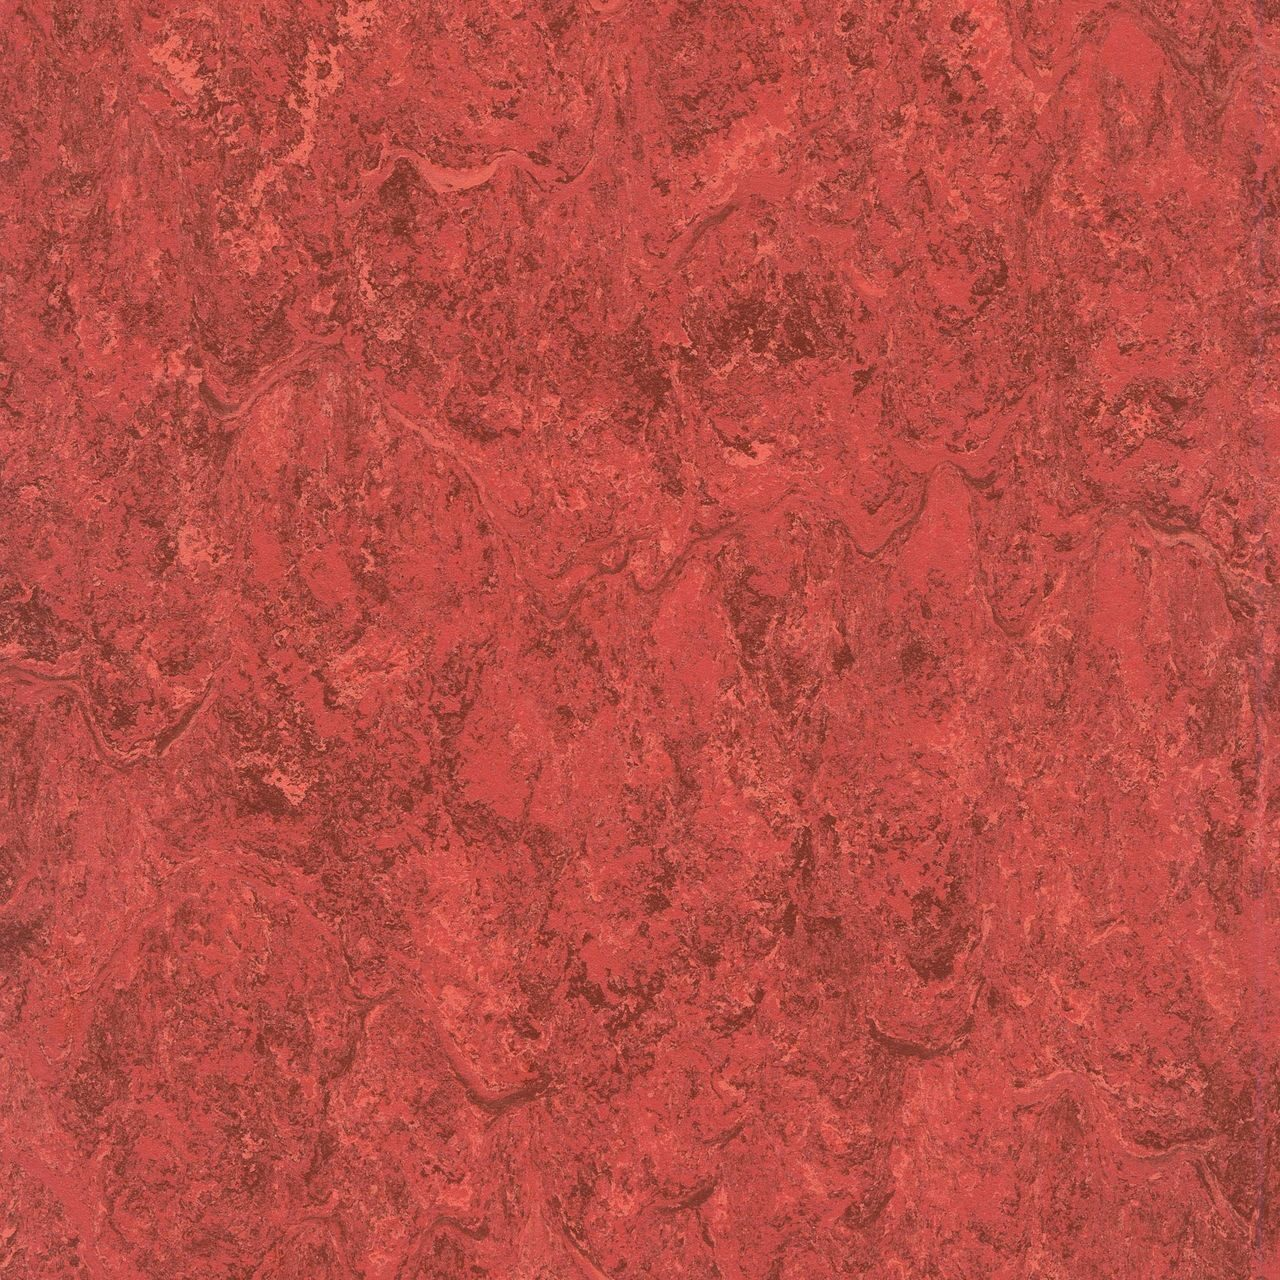 Marmorette 121-048 cranberry red